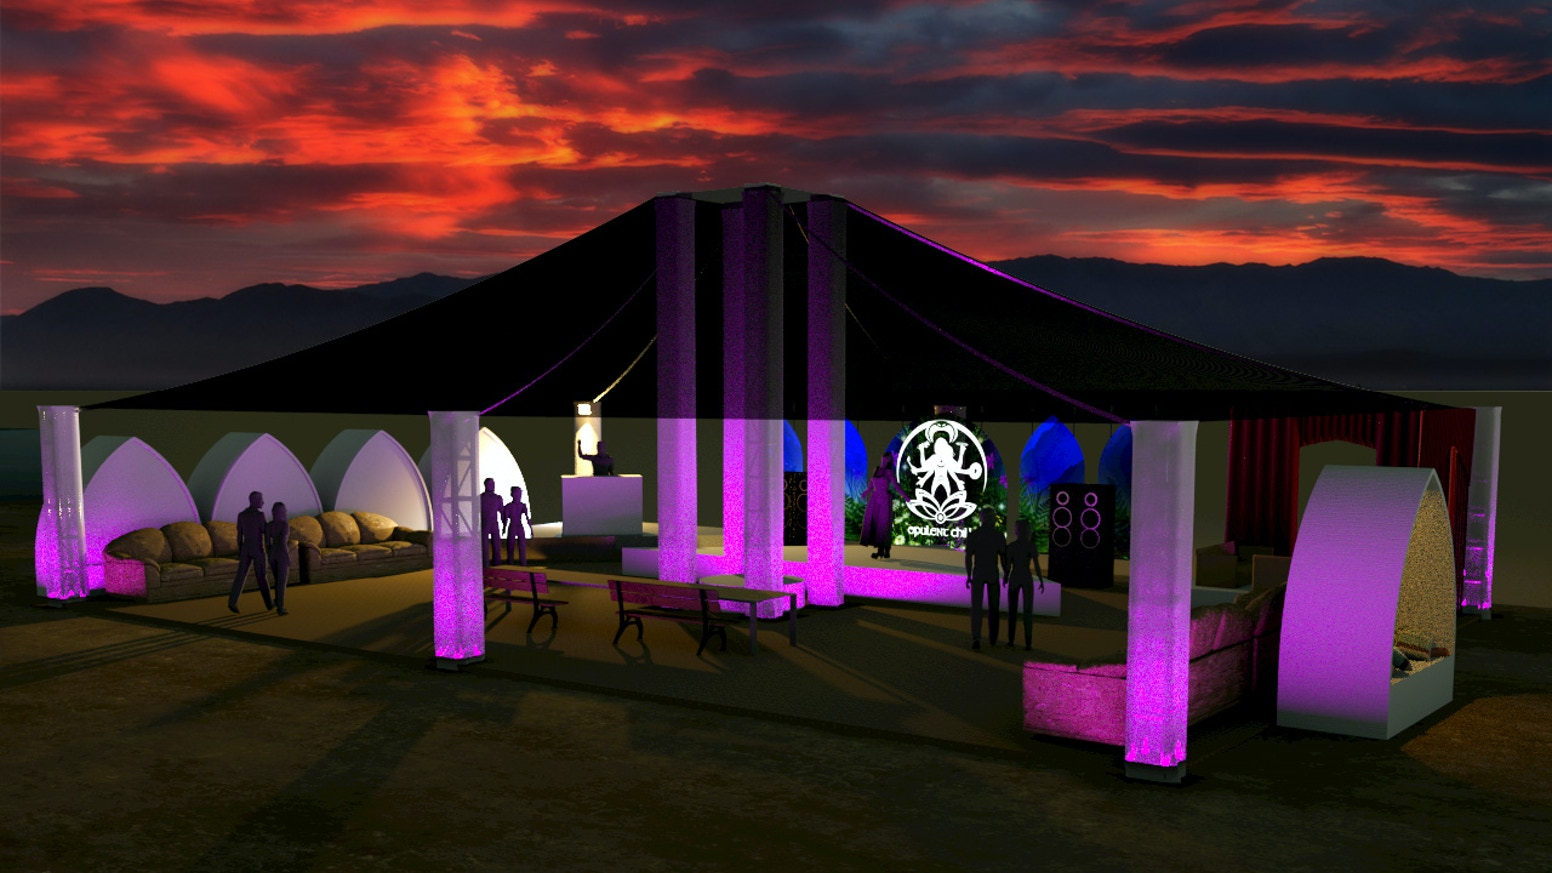 new chill structure lounge at opulent chill bm 2017 by opulent